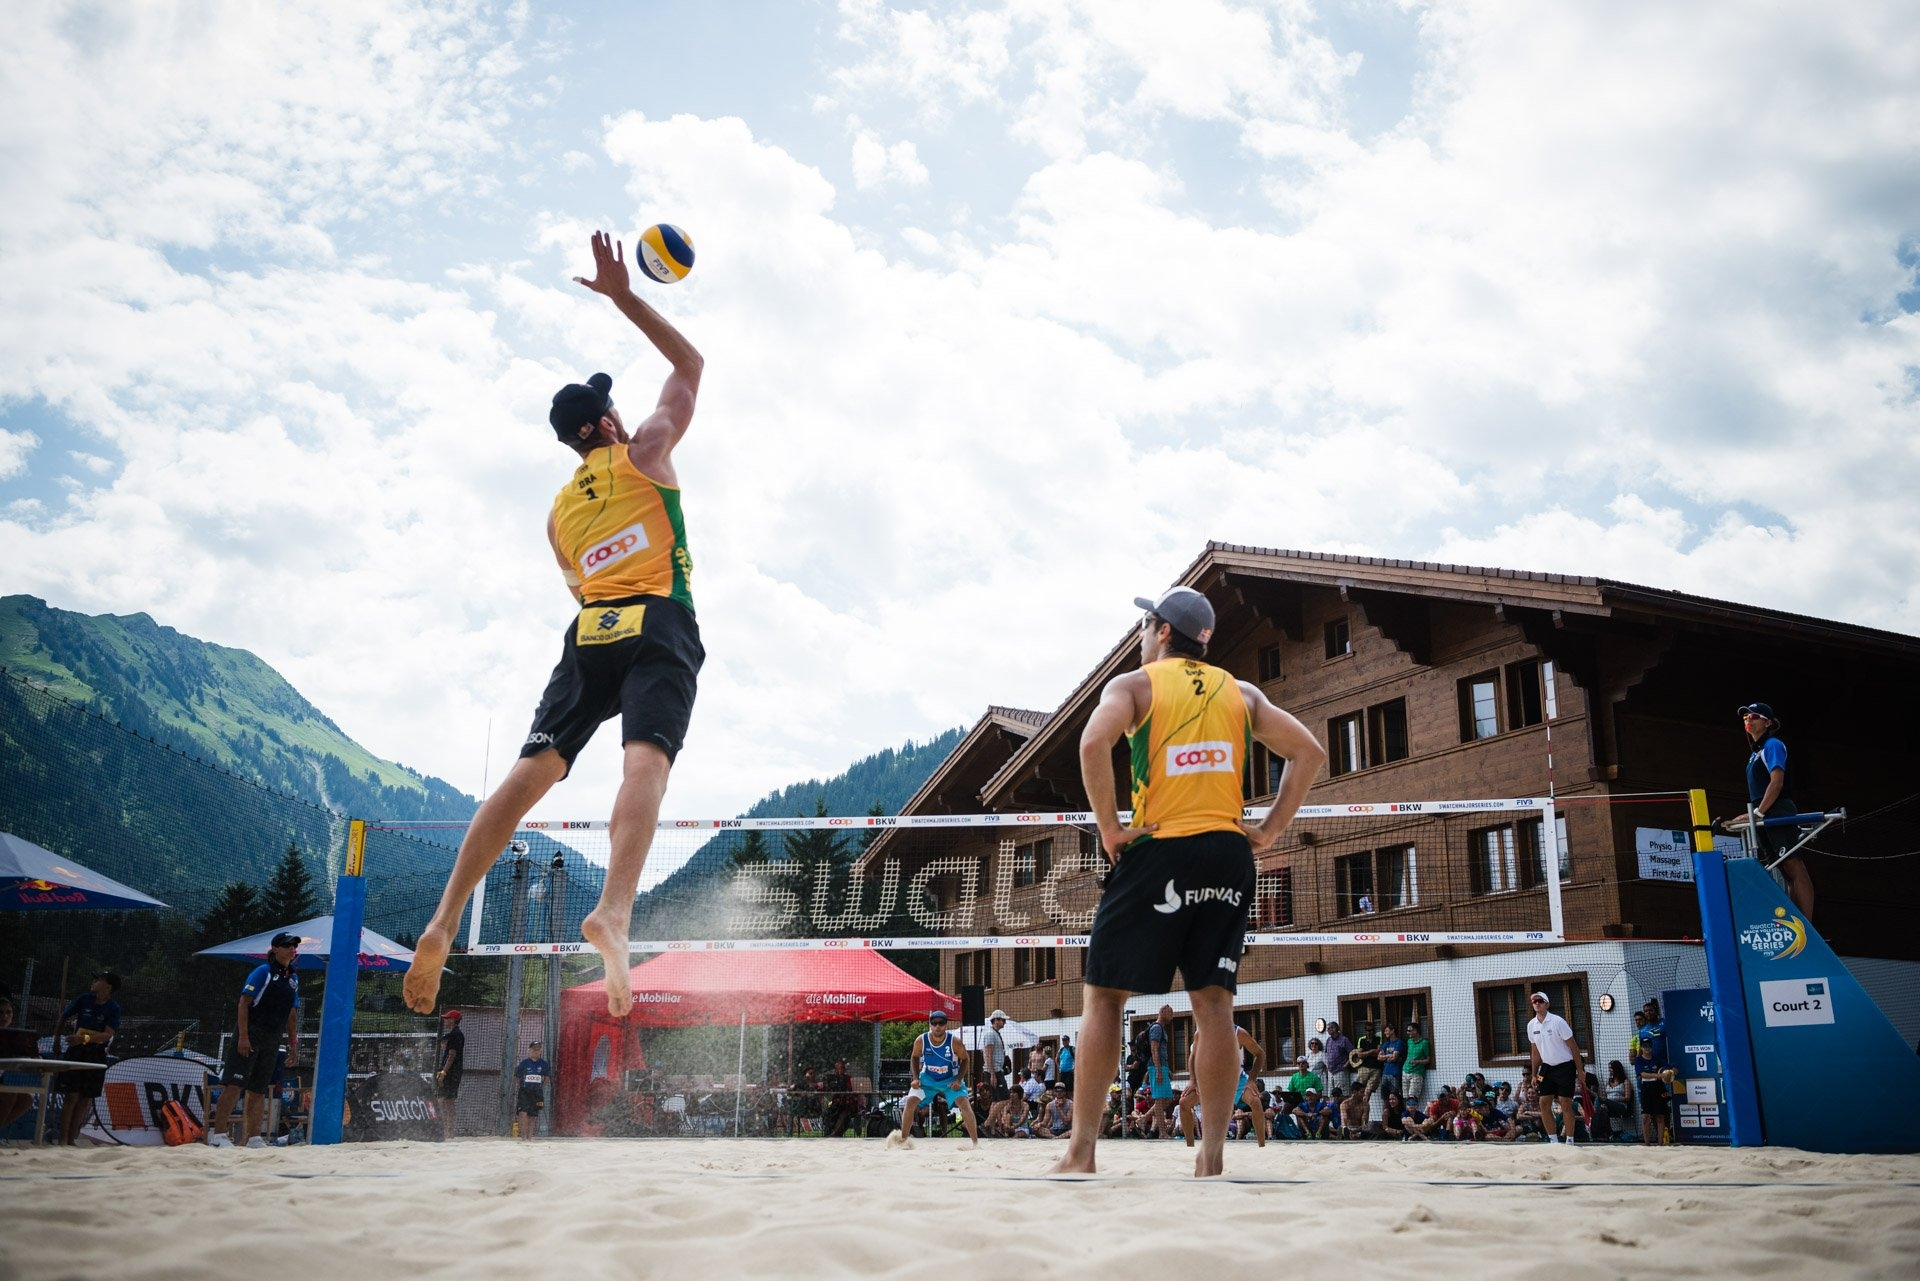 The background with the mountains and the village is certainly Gstaad's most remarkable feature (Photocredit: FIVB)